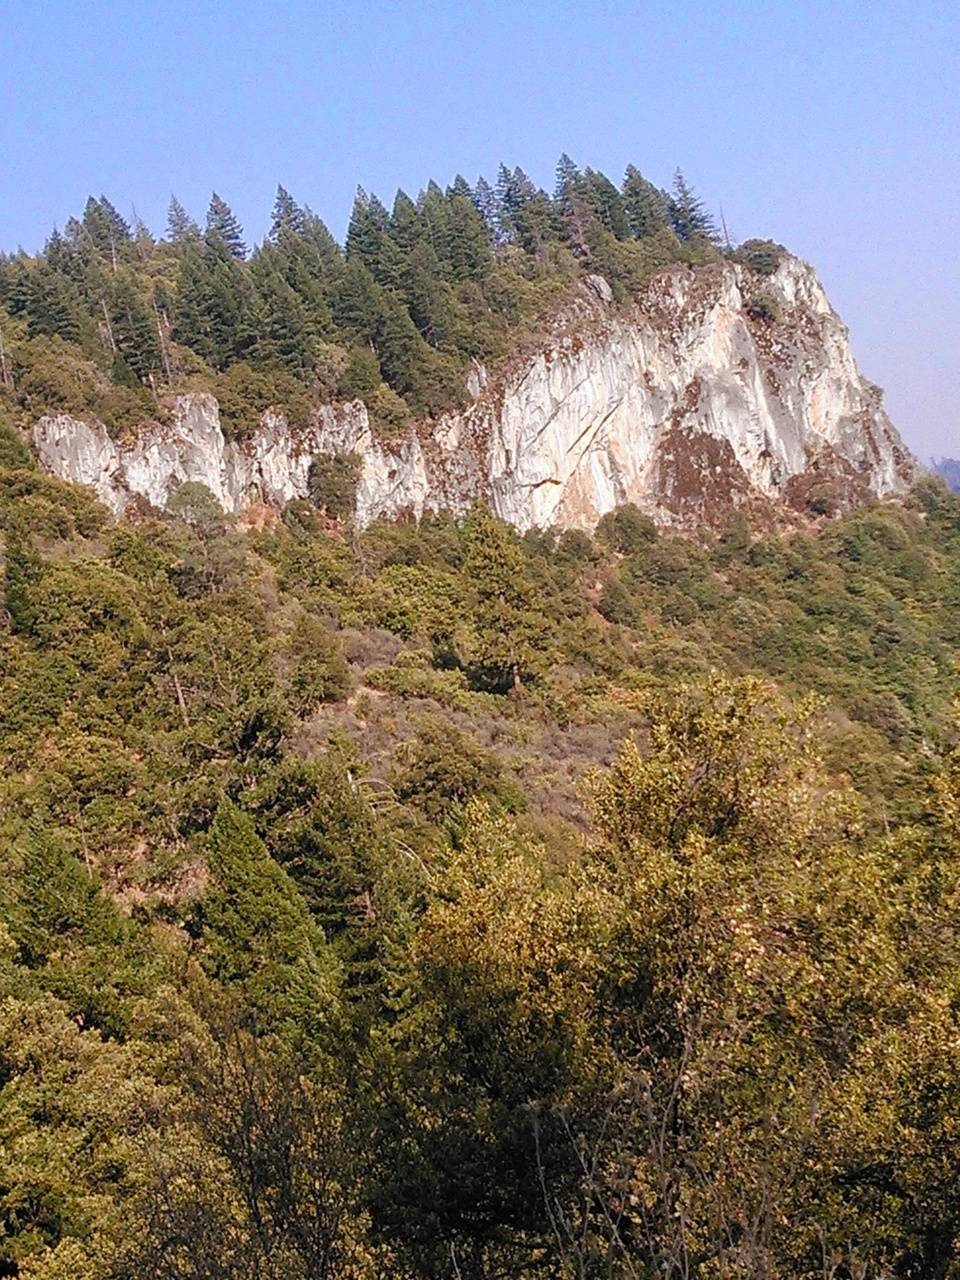 Rock mountain